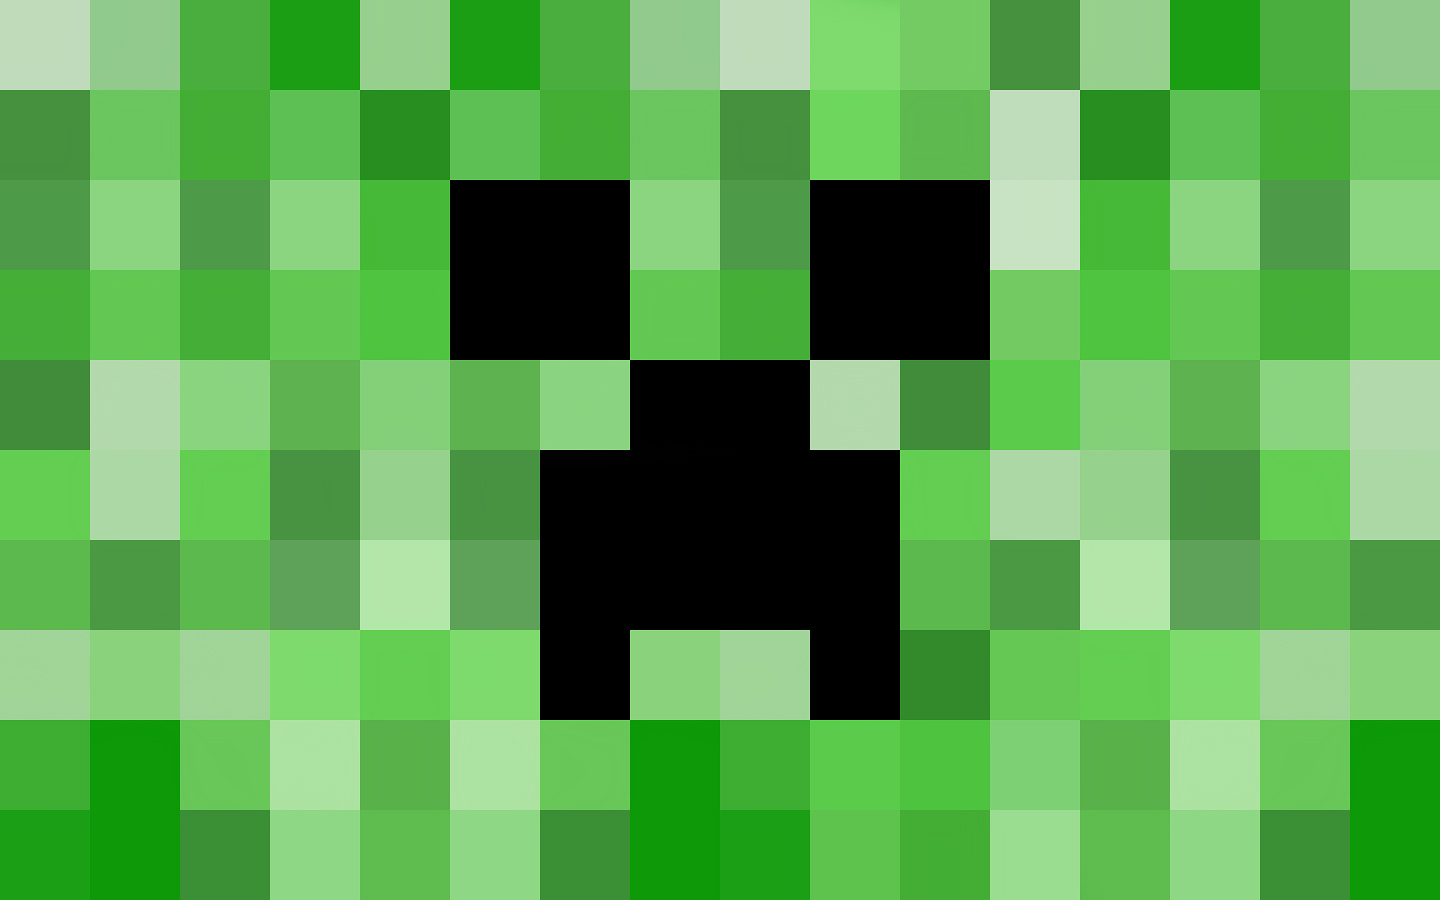 Minecraft Creeper Wallpaper Minecraft Skins 1440x900